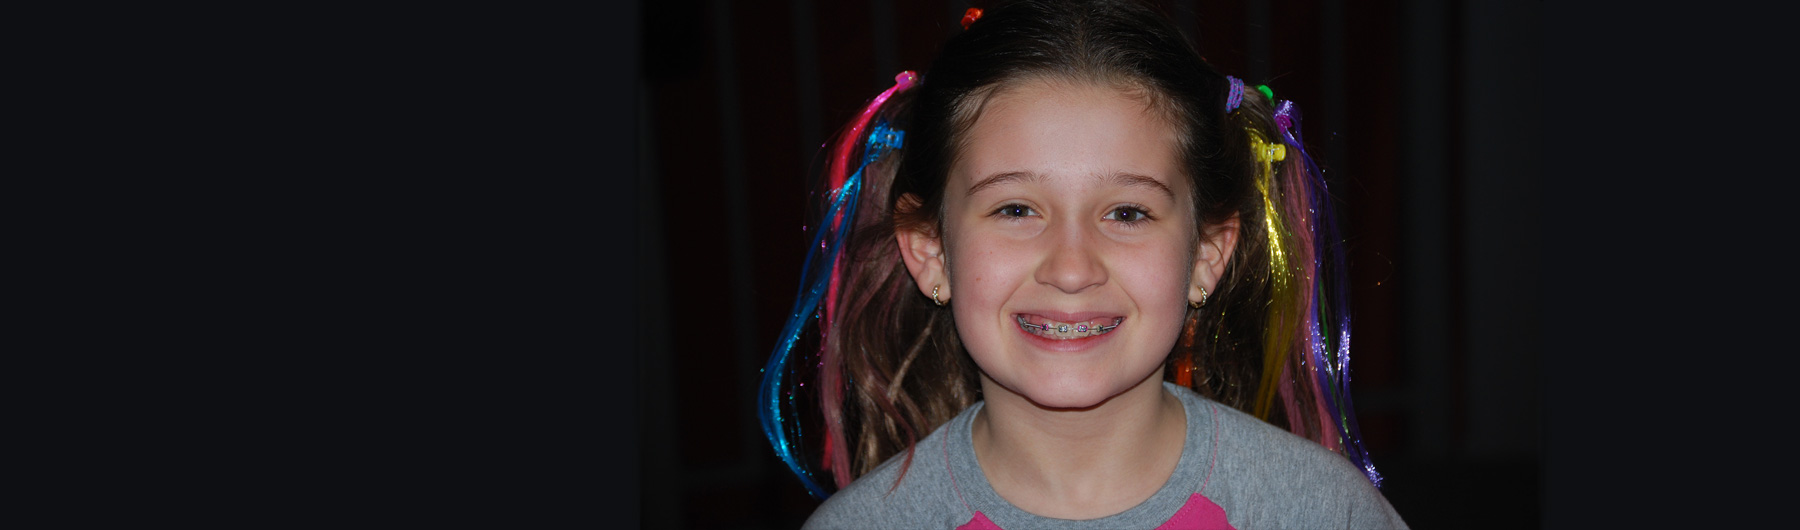 image of a youth smiling with braces, and colourful hair clips